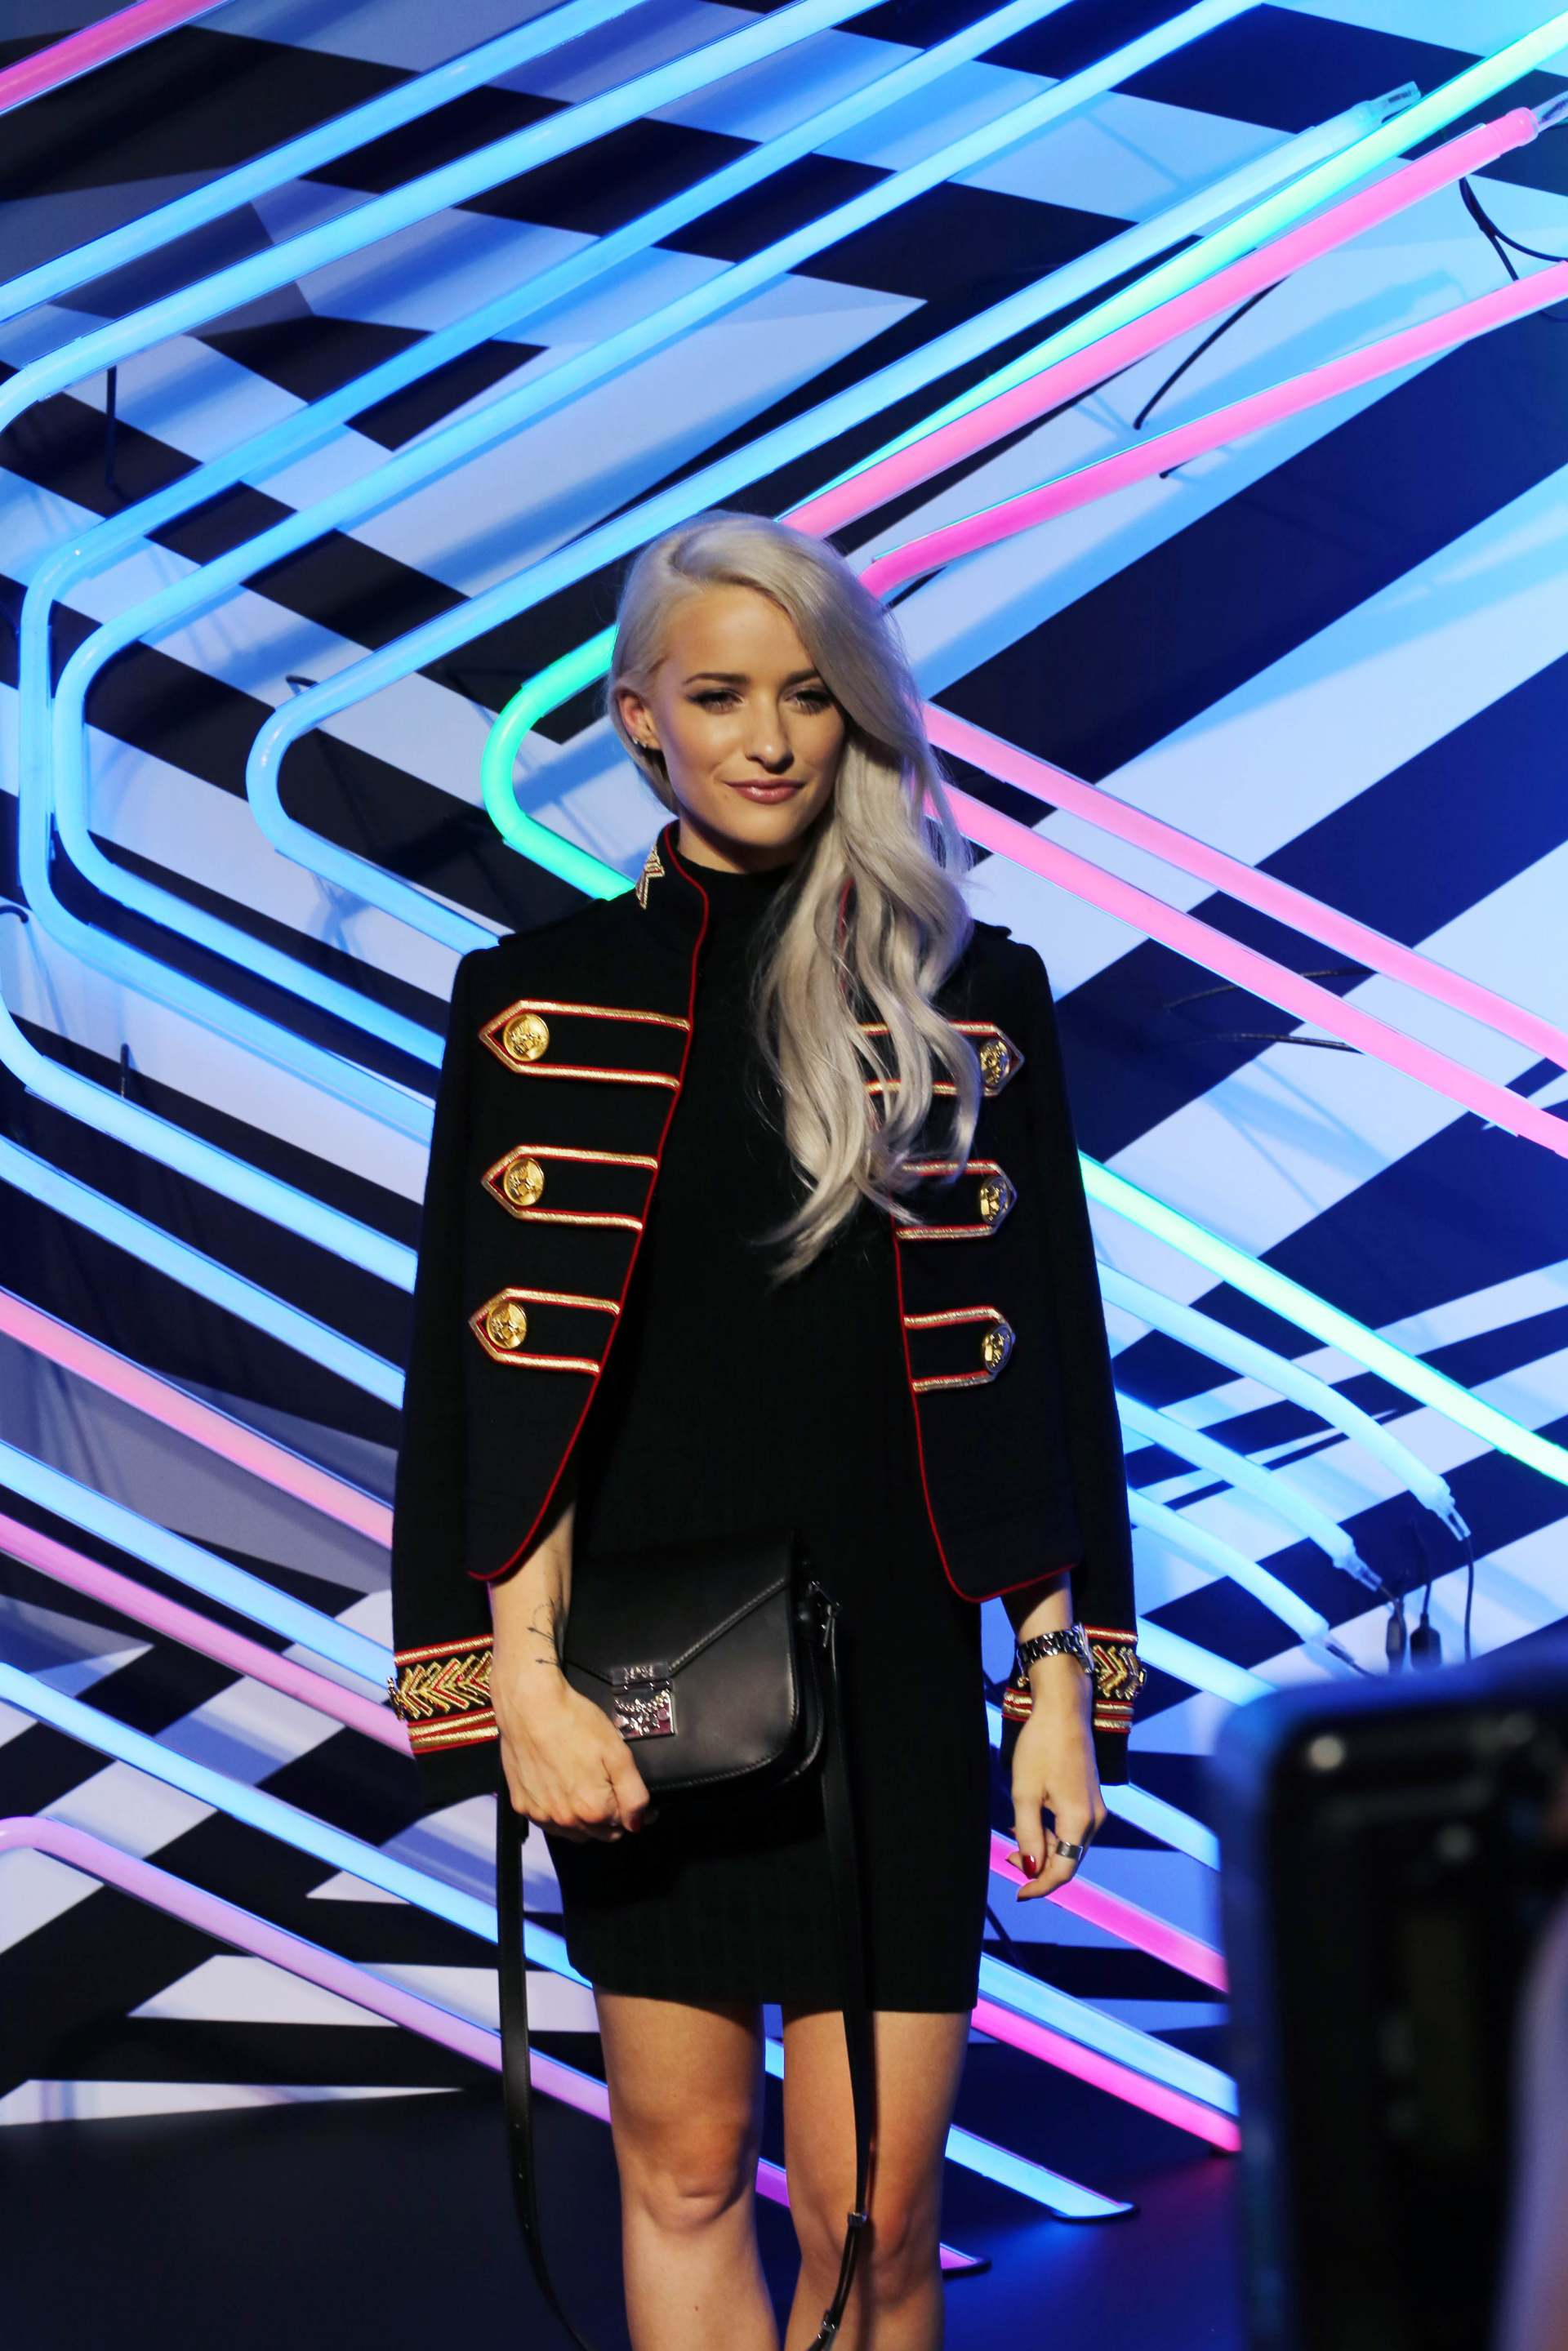 mcm x tobias rehberger event in Hong Kong inthefrow victoria magrath